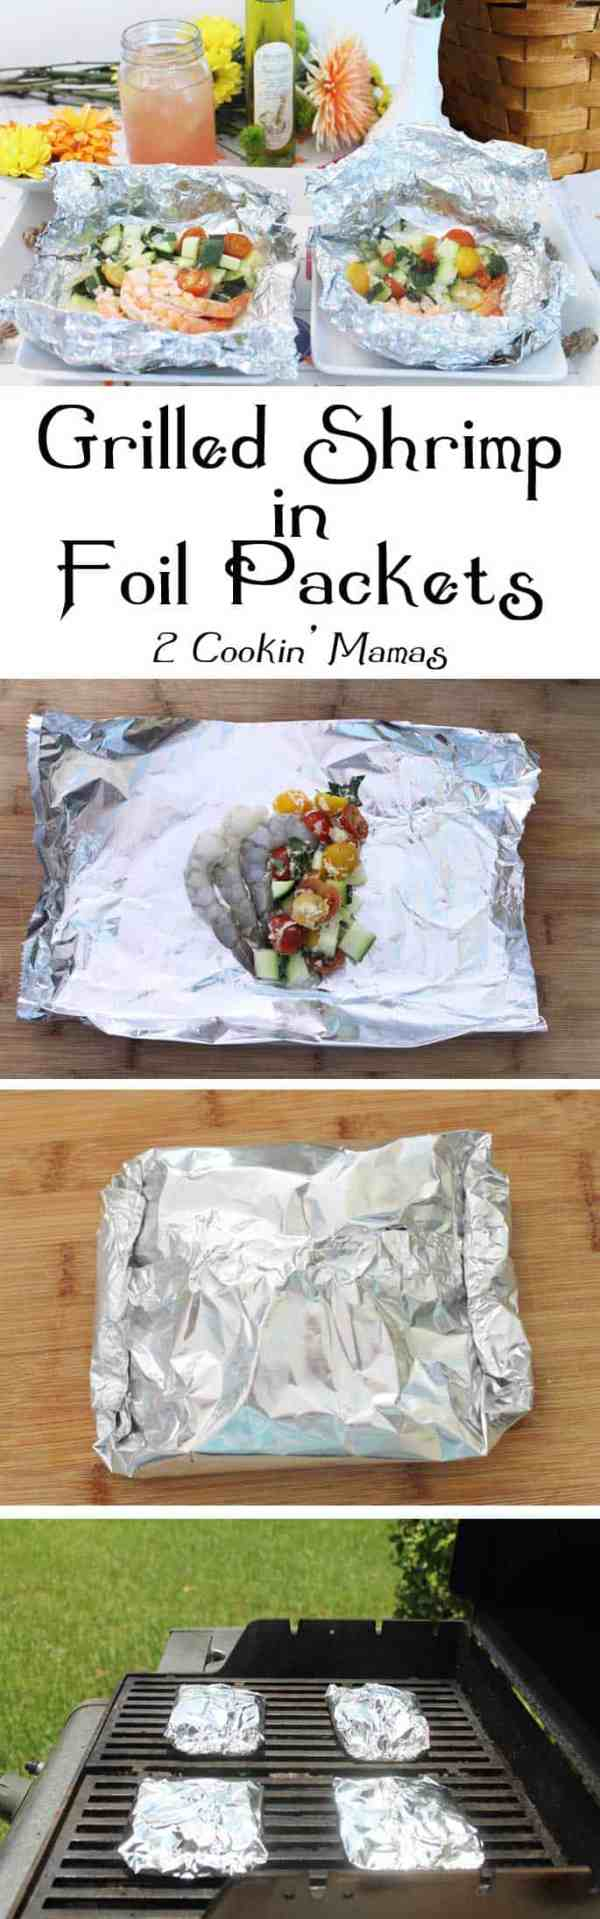 Grilled-Shrimp-Foil-Packets main | 2 Cookin Mamas Quick & easy dinner. Marinate, wrap in foil, grill & serve. Easy cleanup too! Great for backyard BBQs or campfires. #recipe